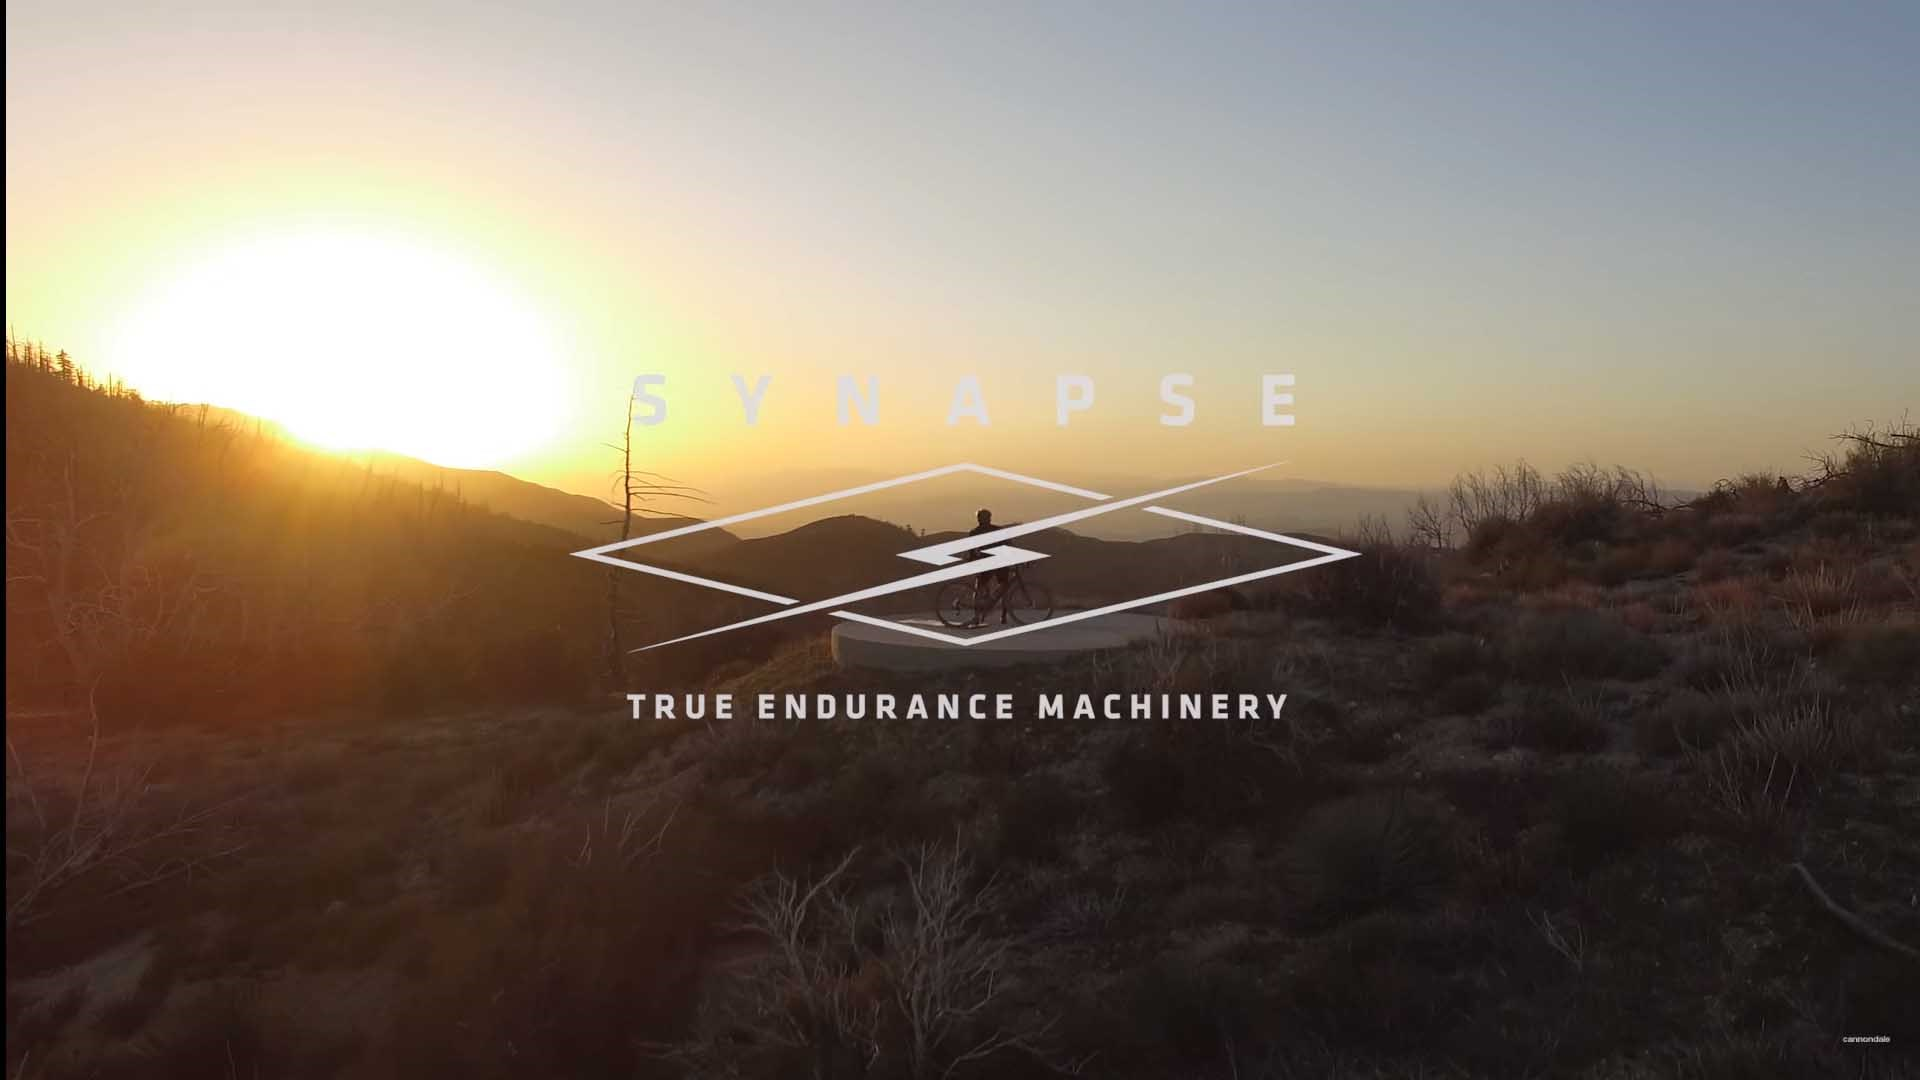 All-new Cannondale Synapse True Endurance Machinery